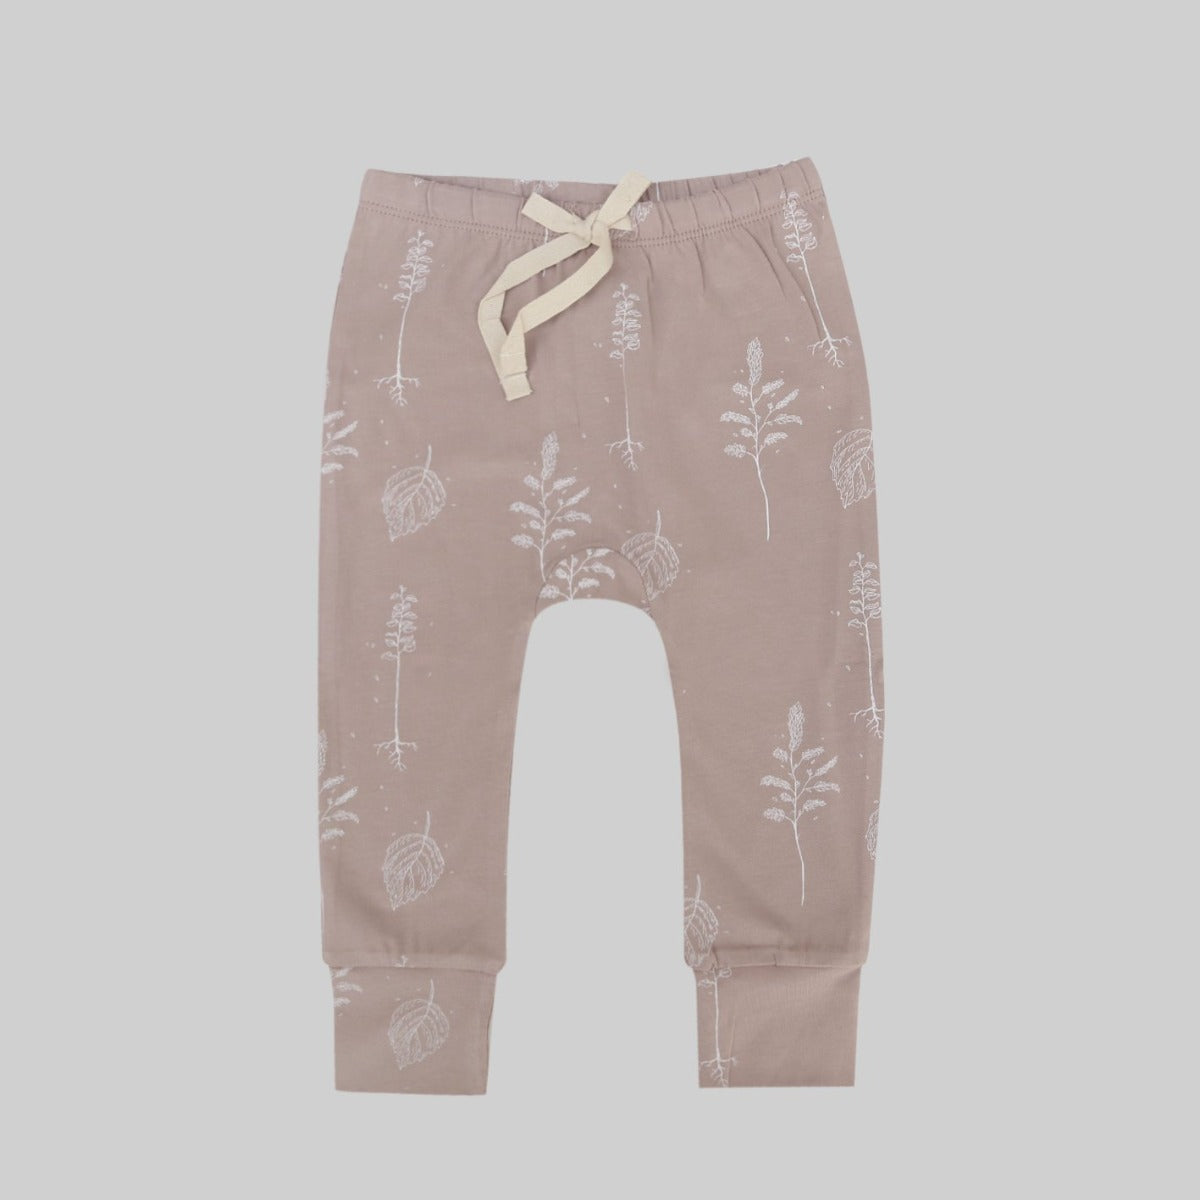 US stockist of Buck & Baa organic cotton shadow pink leggings